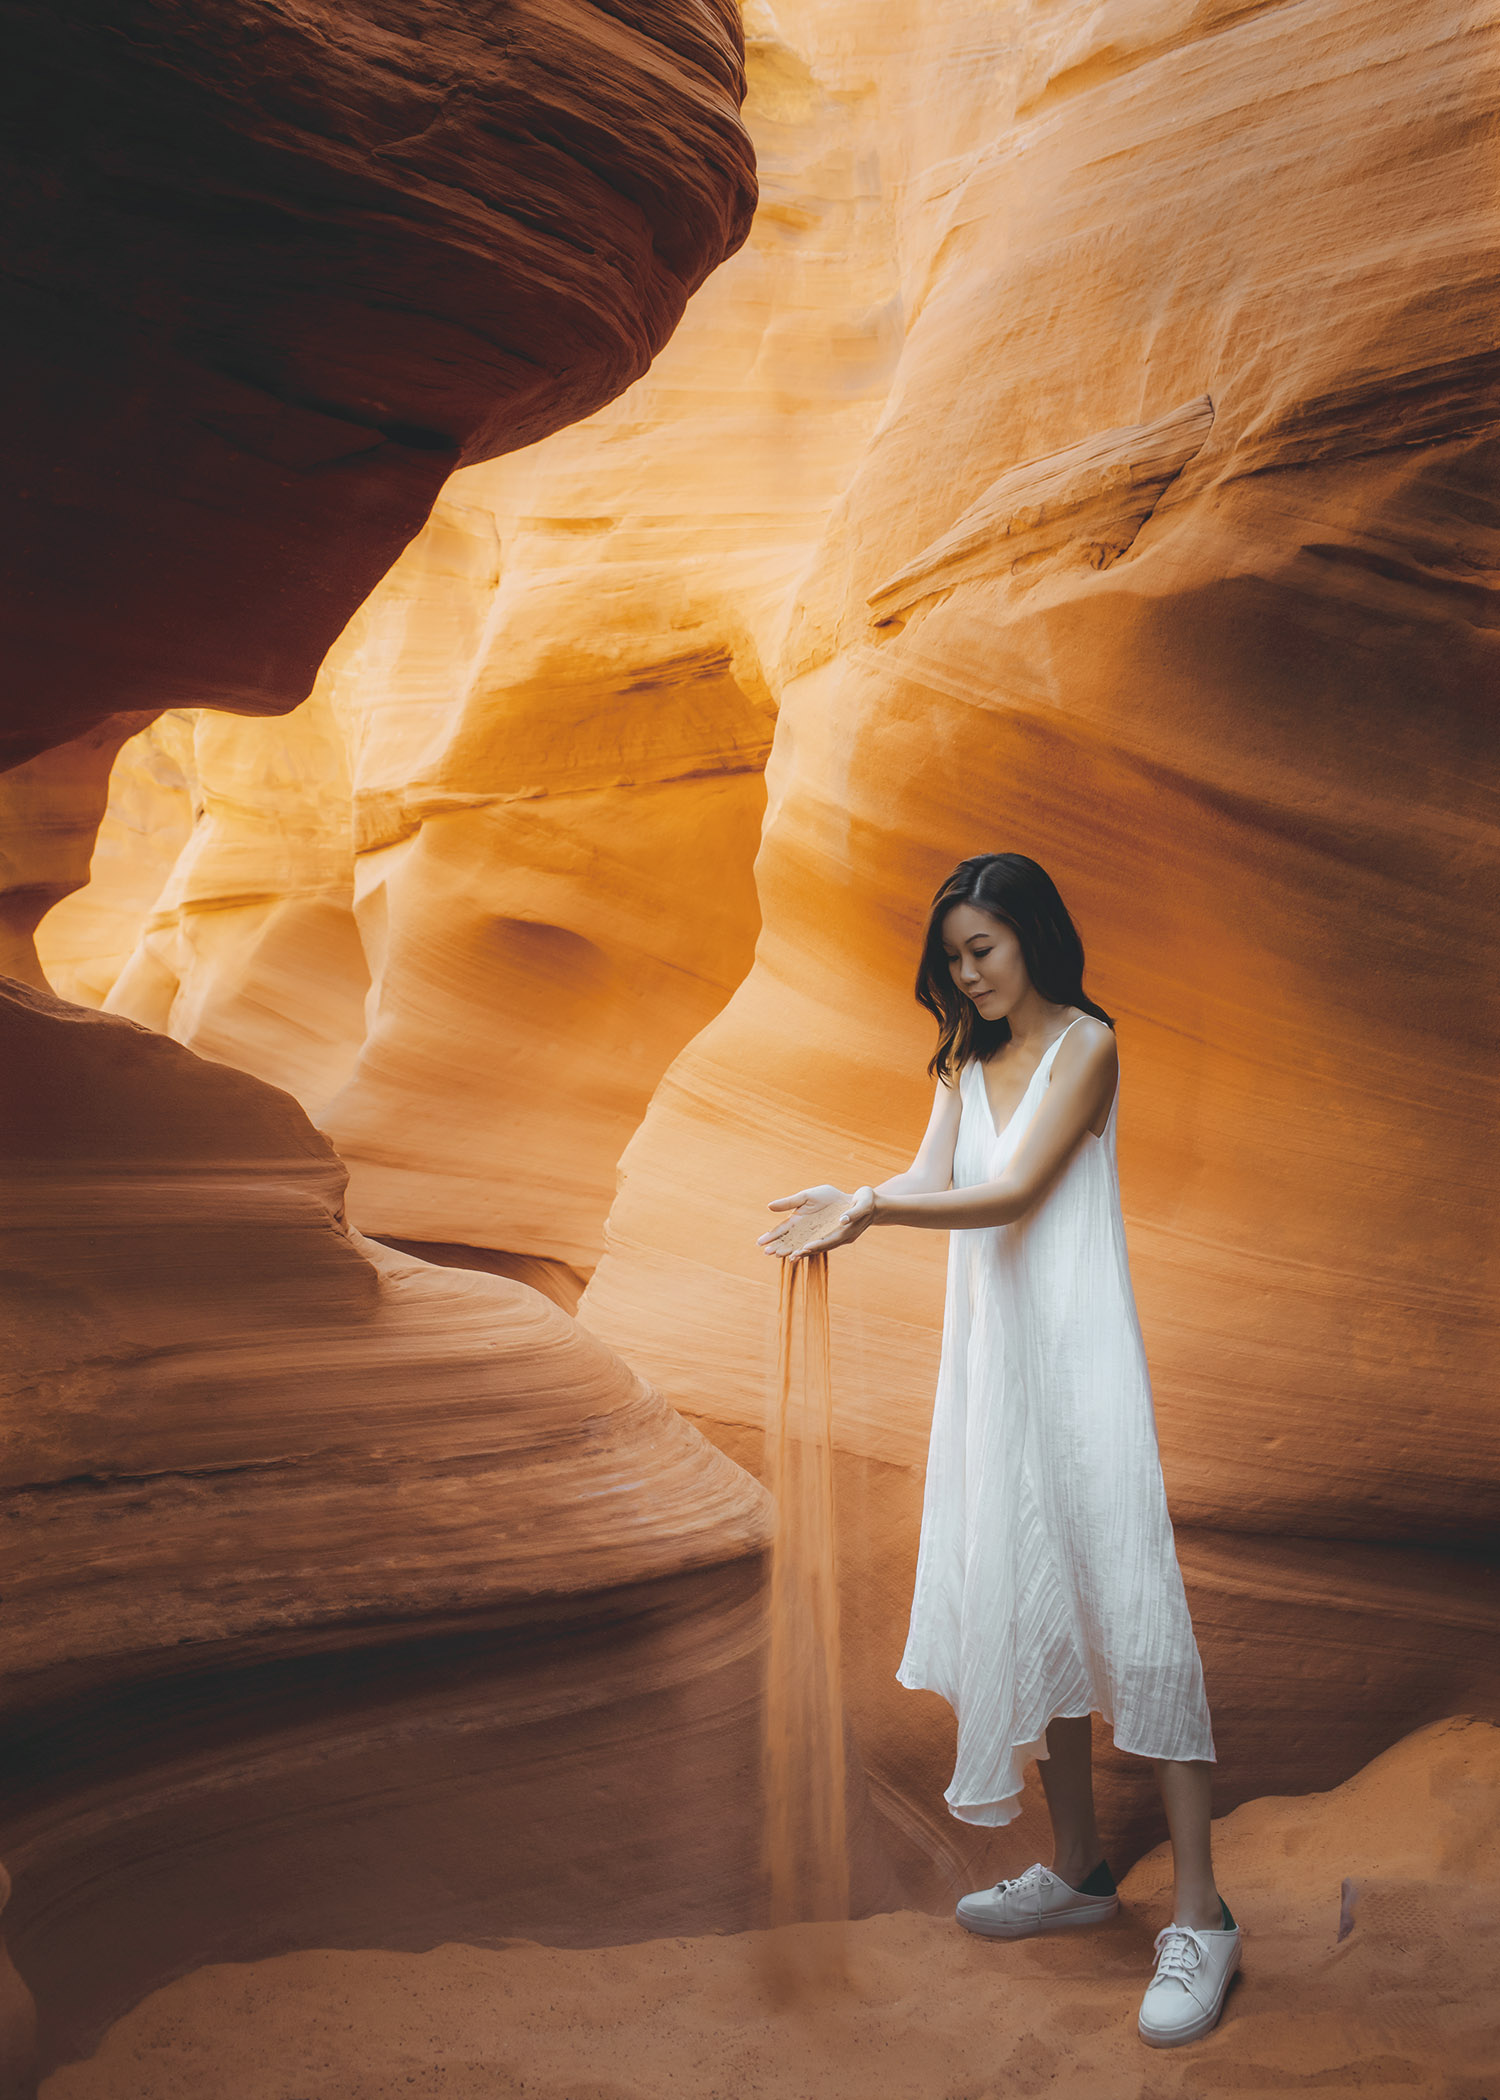 Arizona must visit top 5 Antelope Canyon Must visit Lifestyle fashion travel blogger Jenny Tsang of Tsangtastic wearing white dress and white sneakers in Antelope Canyon in Arizona